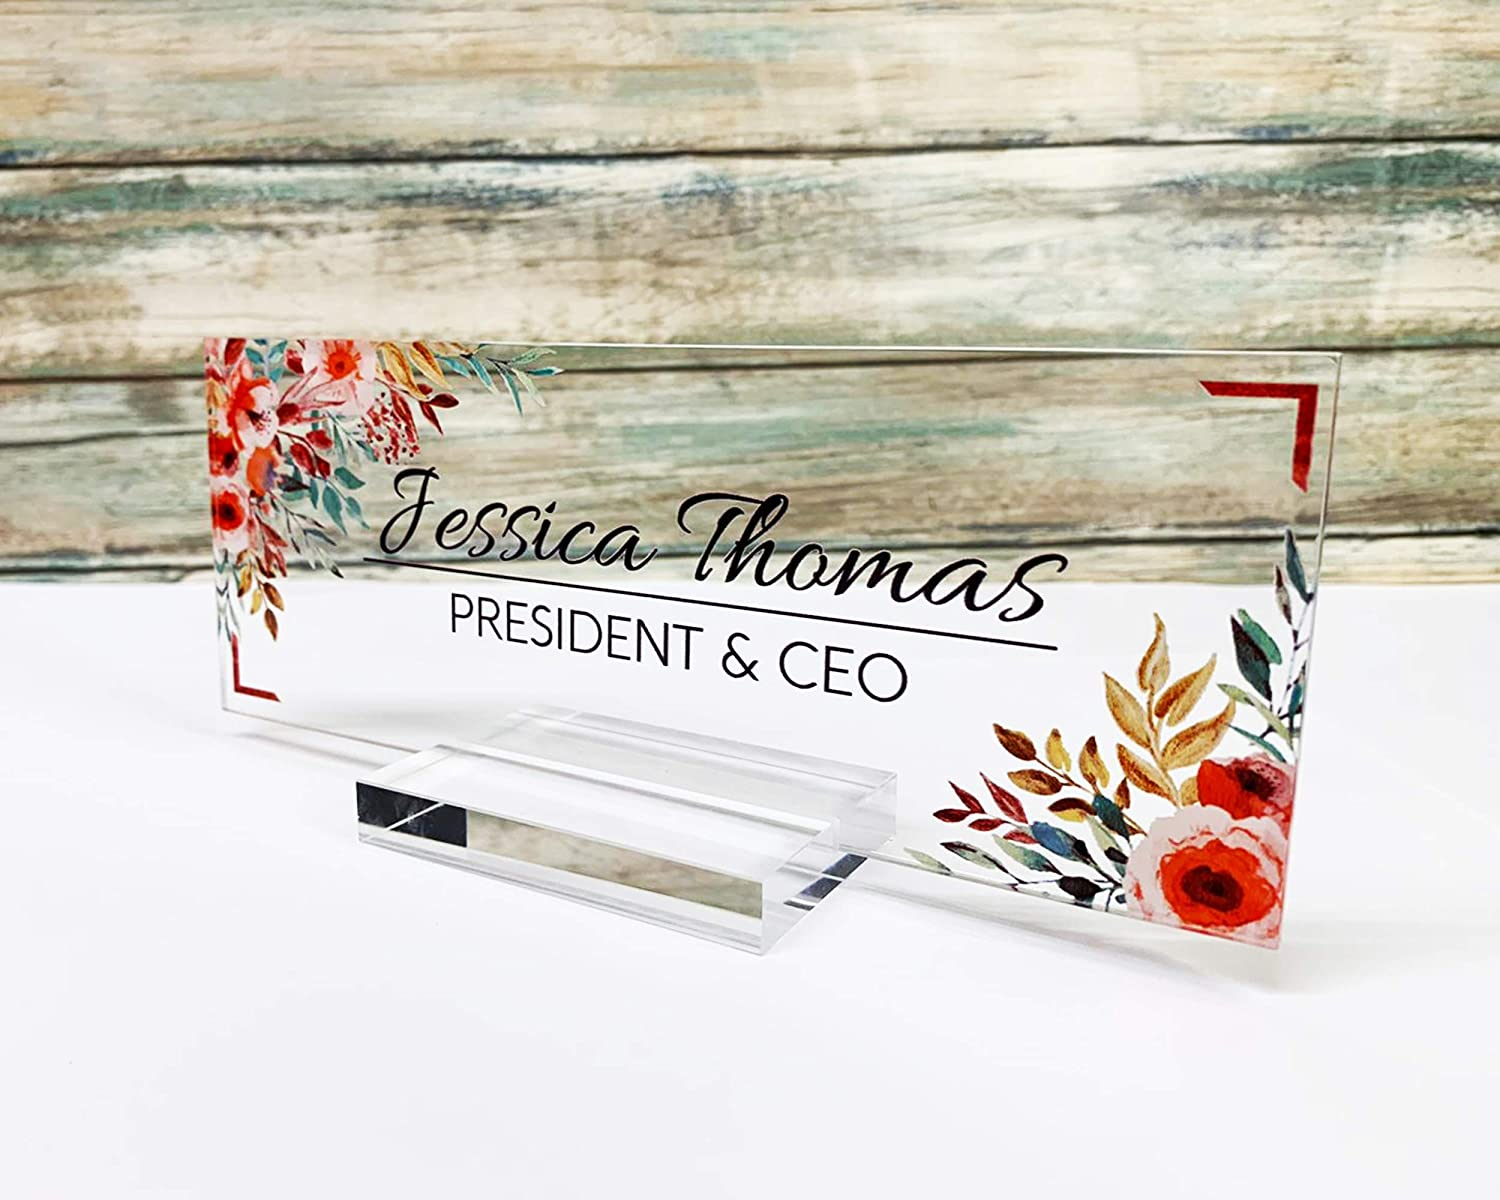 Personalized Desk Name Plate for Office Sign Modern Office Women Decor Home Desk Name Plate Teacher Desk Name Sign Holder Red Flower - (8